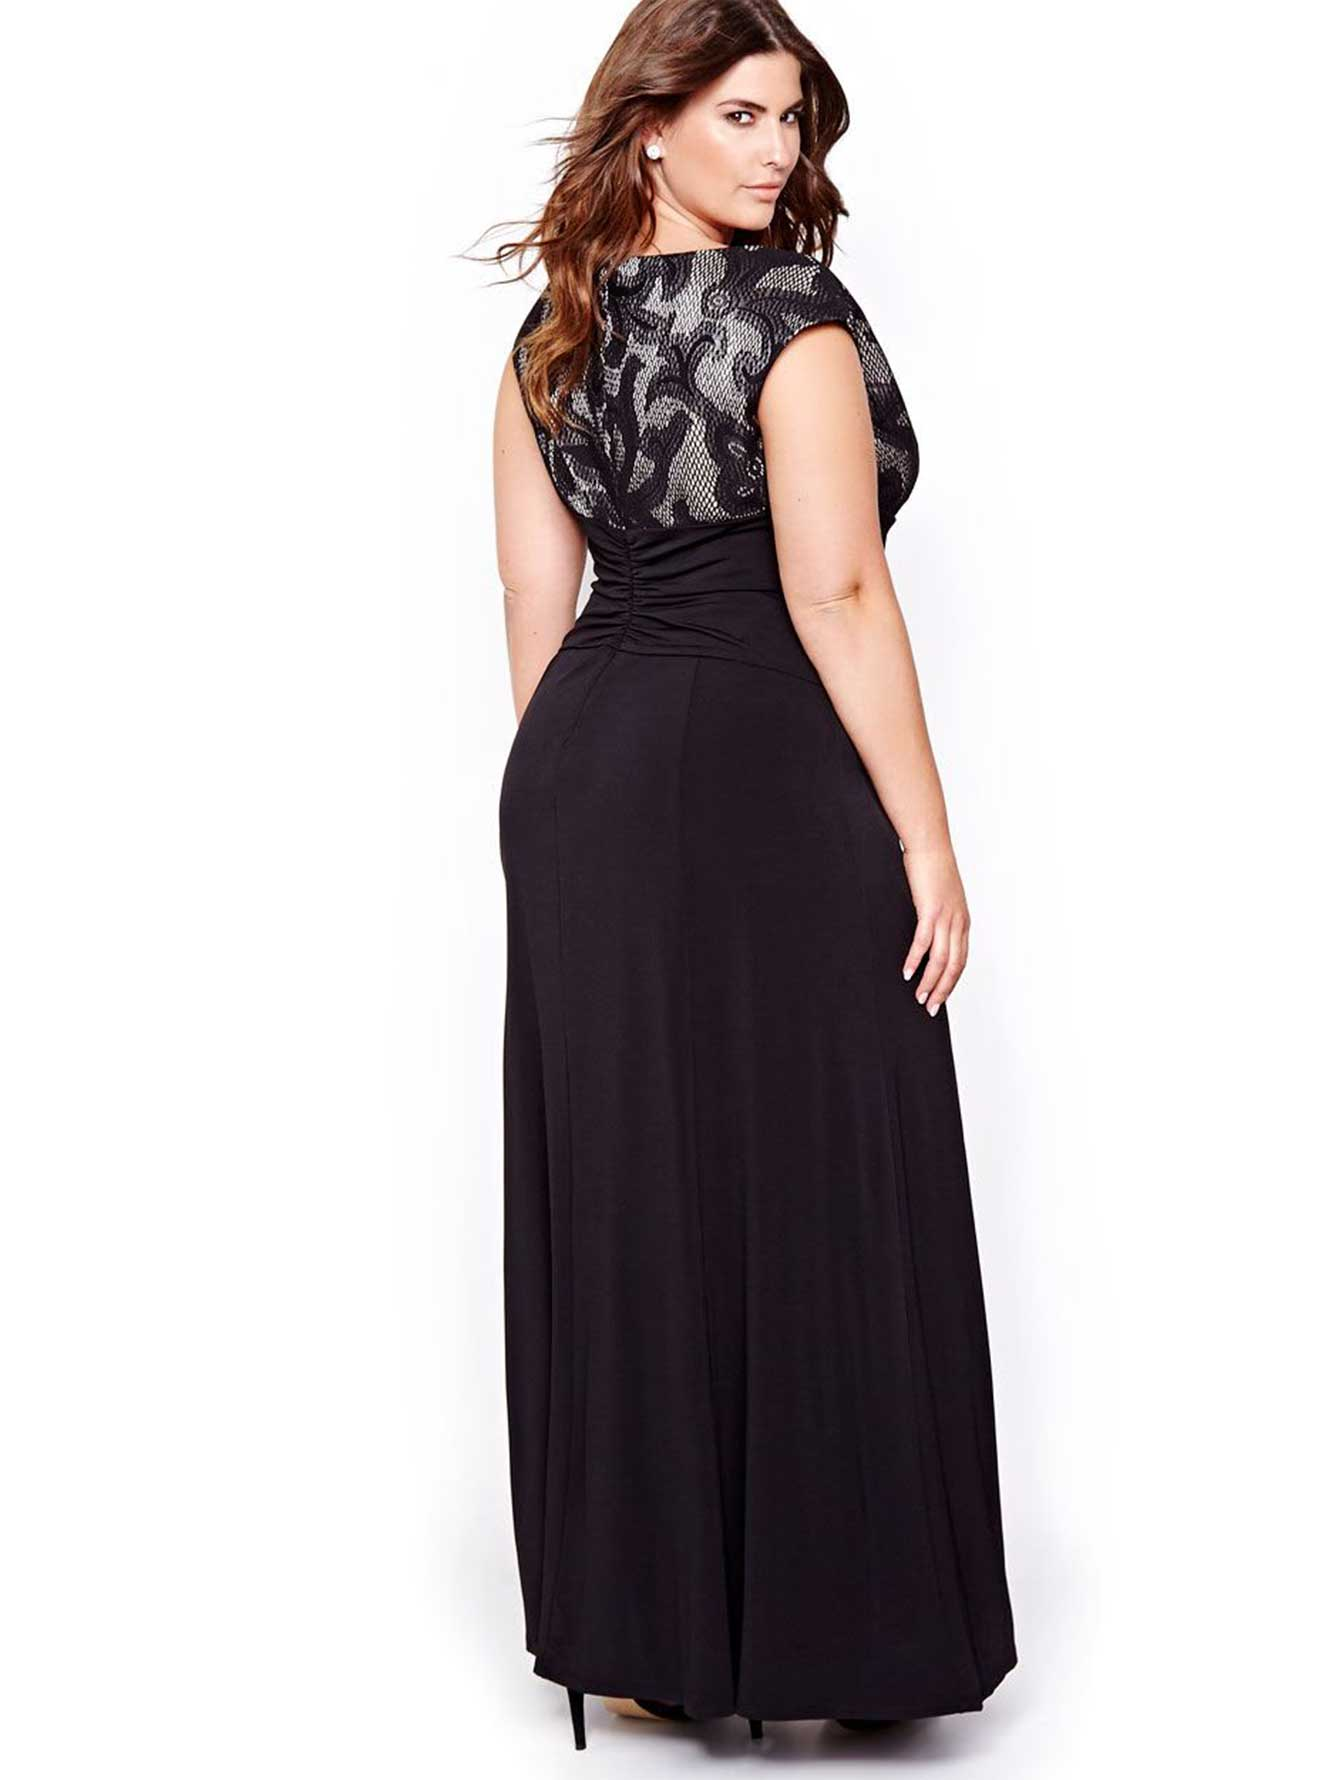 Evening Gown with Contrasting Lace   Addition Elle